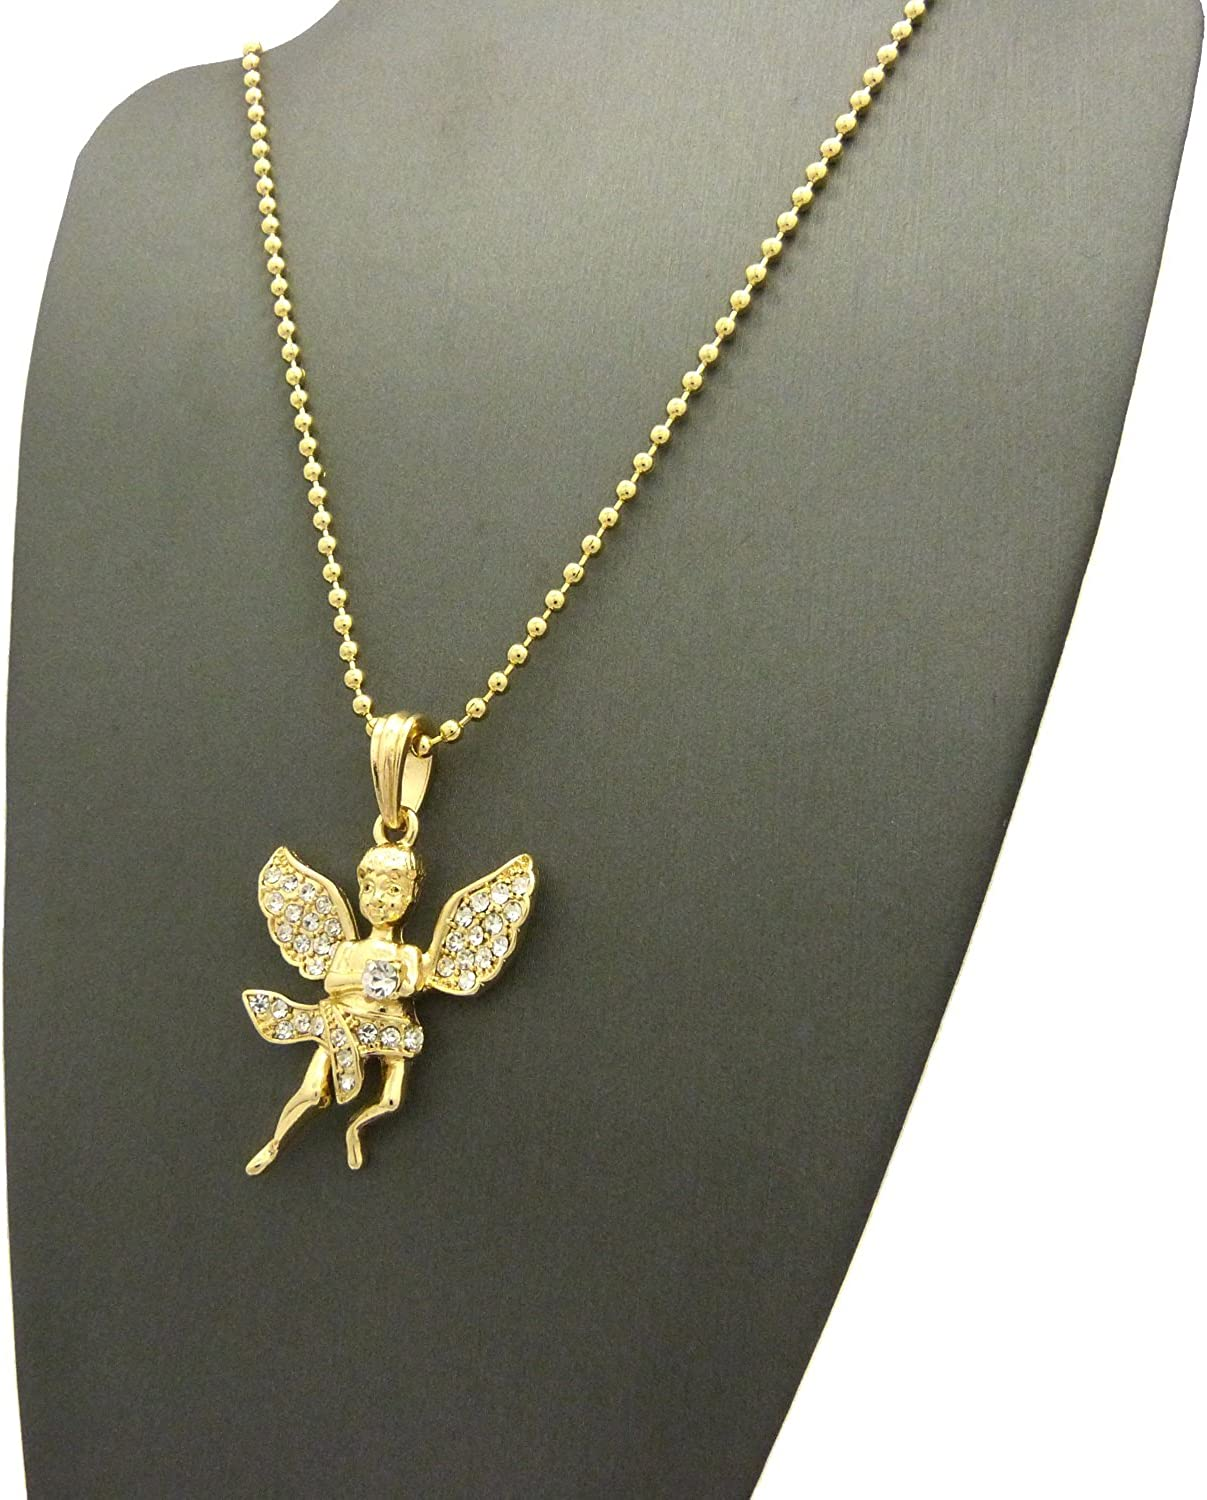 NYFASHION101 Stone Stud Dancing Flying Angel Pendant w//Chain Necklace